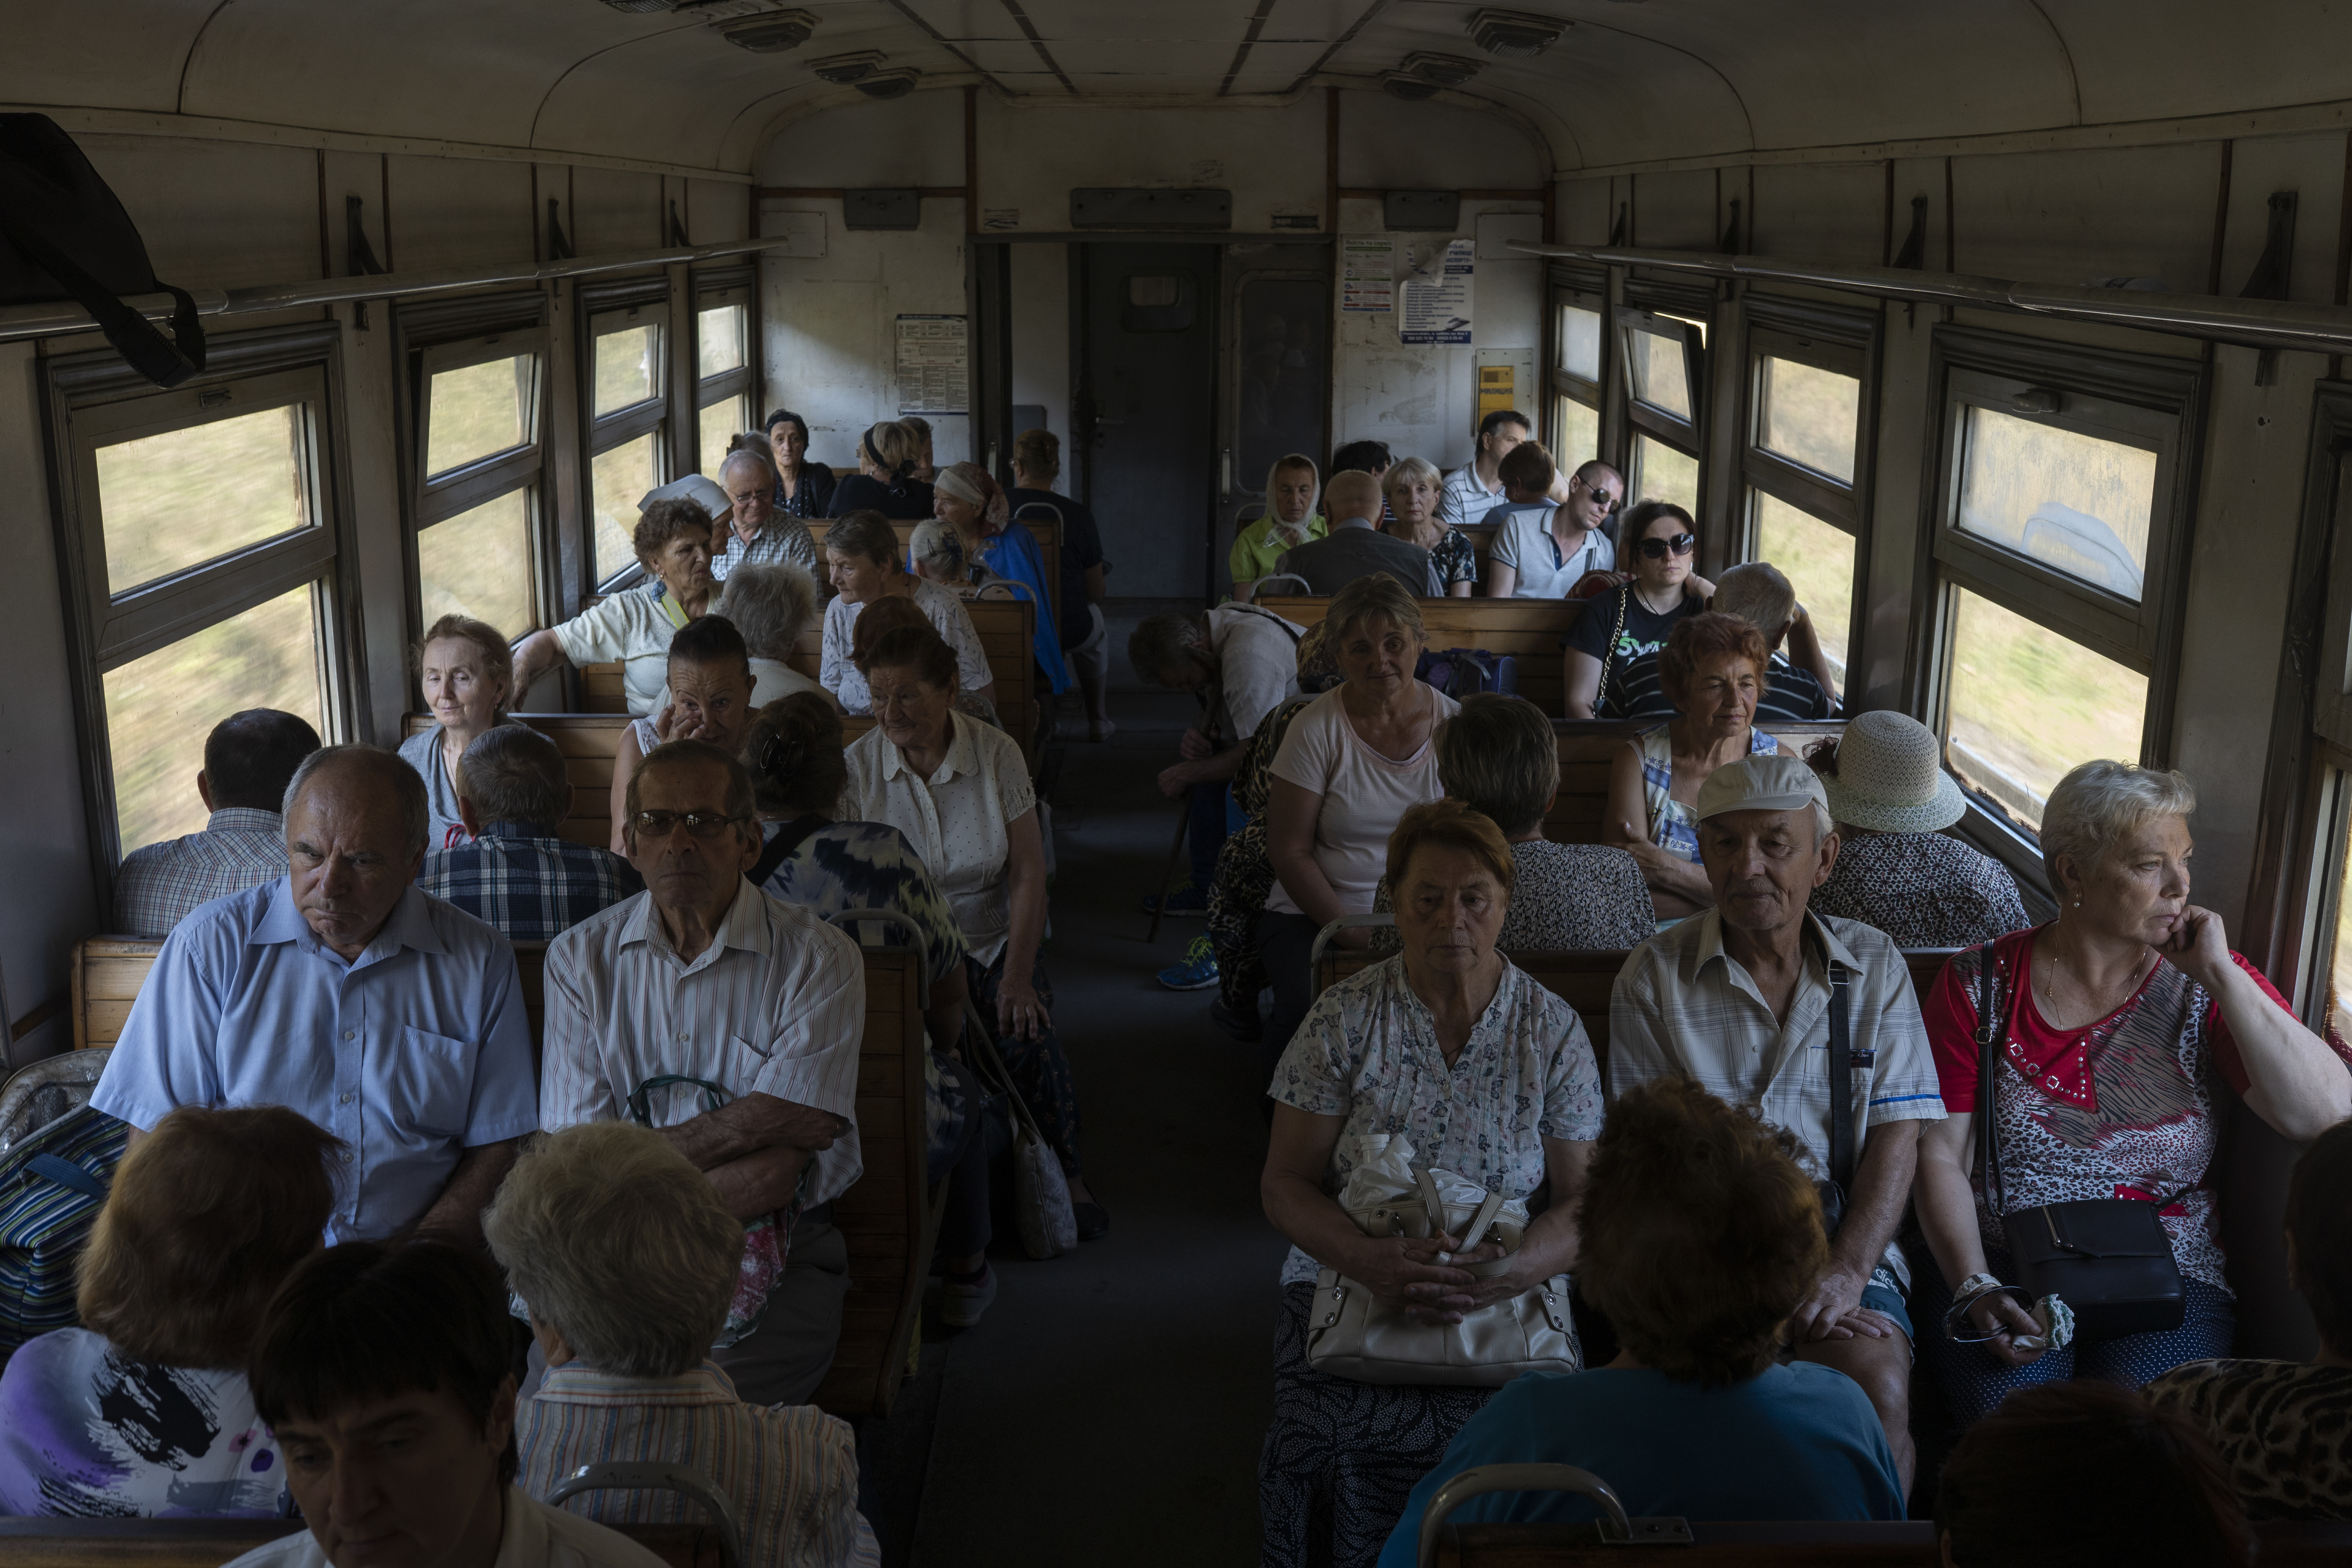 It is not uncommon to have small countryside homes for those who live in apartments in the city. Viktor and Lubov (front right) take a train from Ternopil to their dacha (AtlasNetwork.org Photo/Bernat Parera).